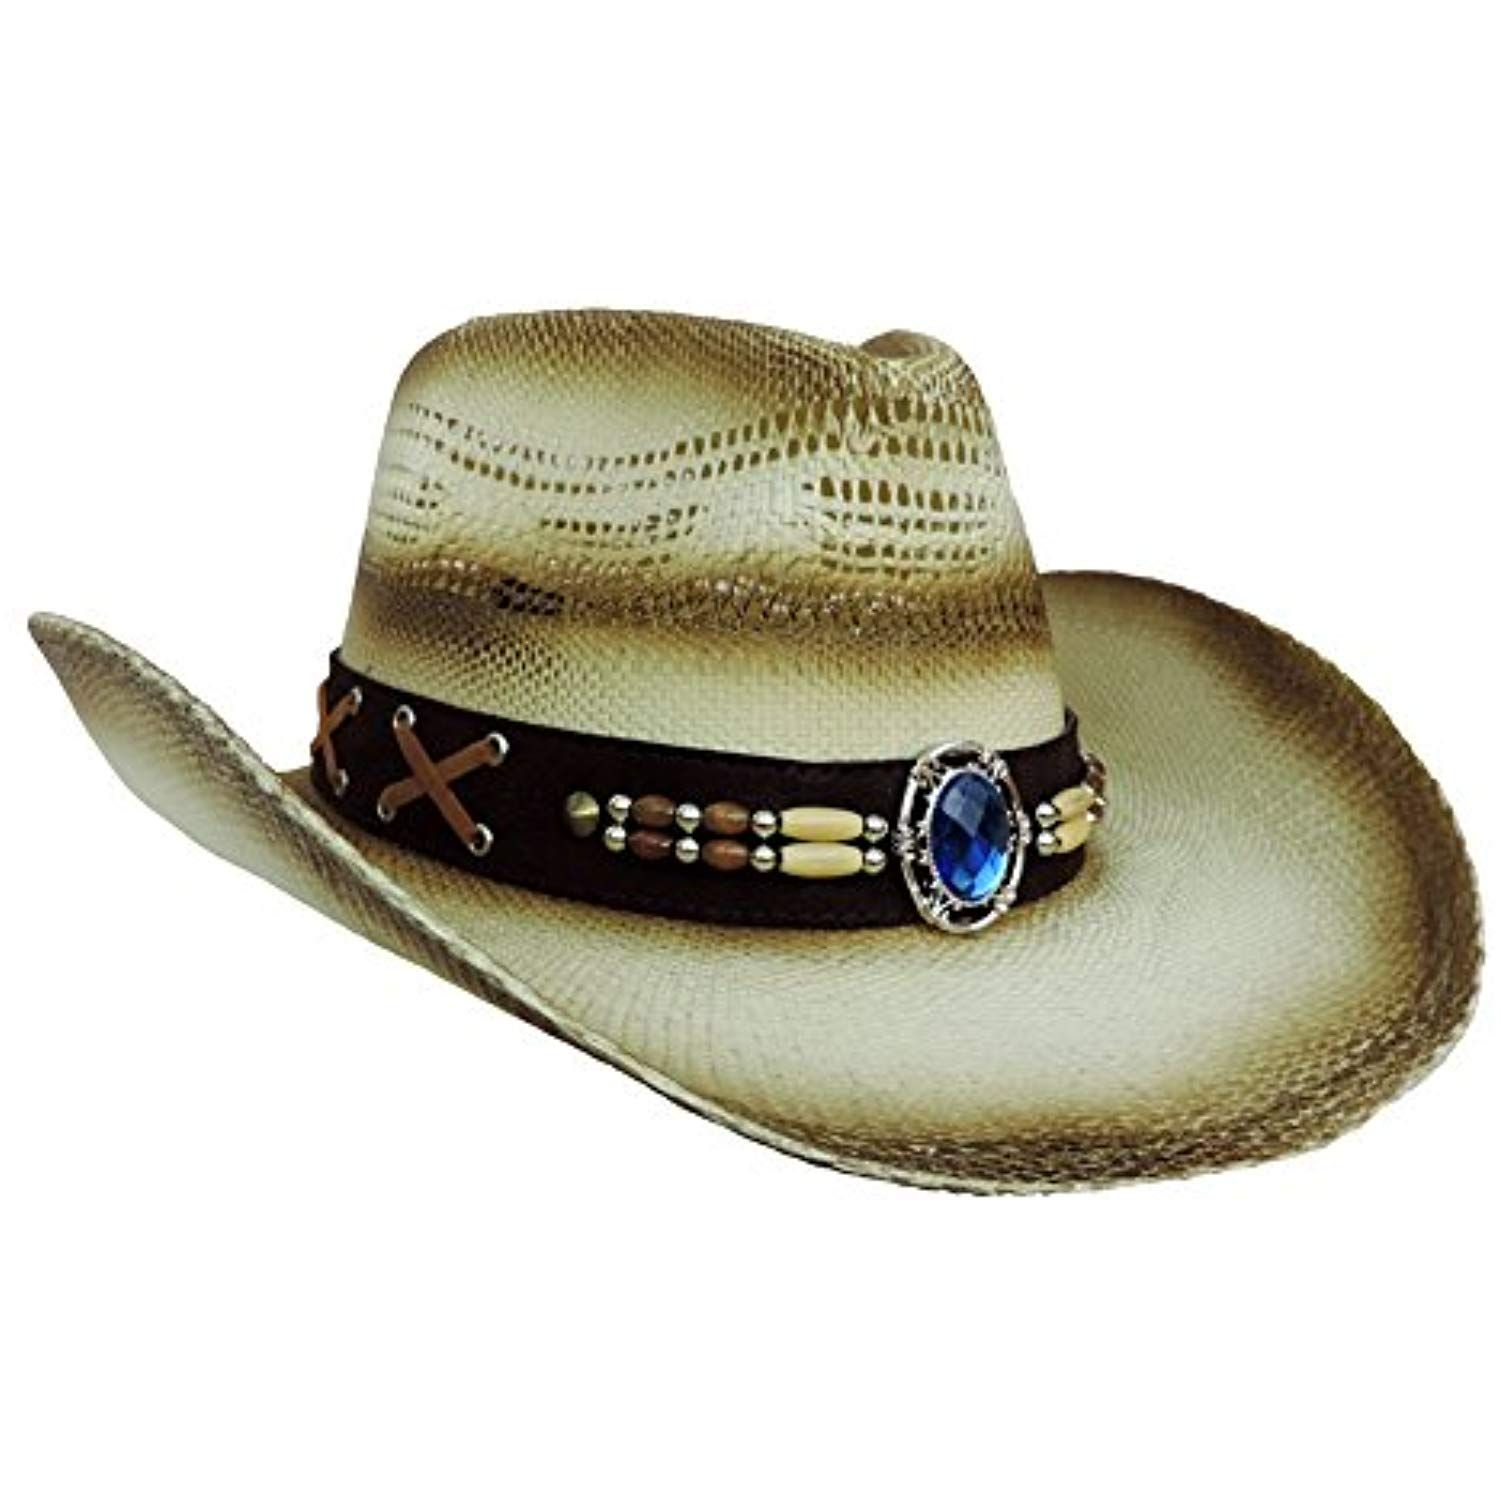 a15eea30388 Tea Stained Straw Western Cowboy Hat w  Blue Jewel Band   Want additional  info